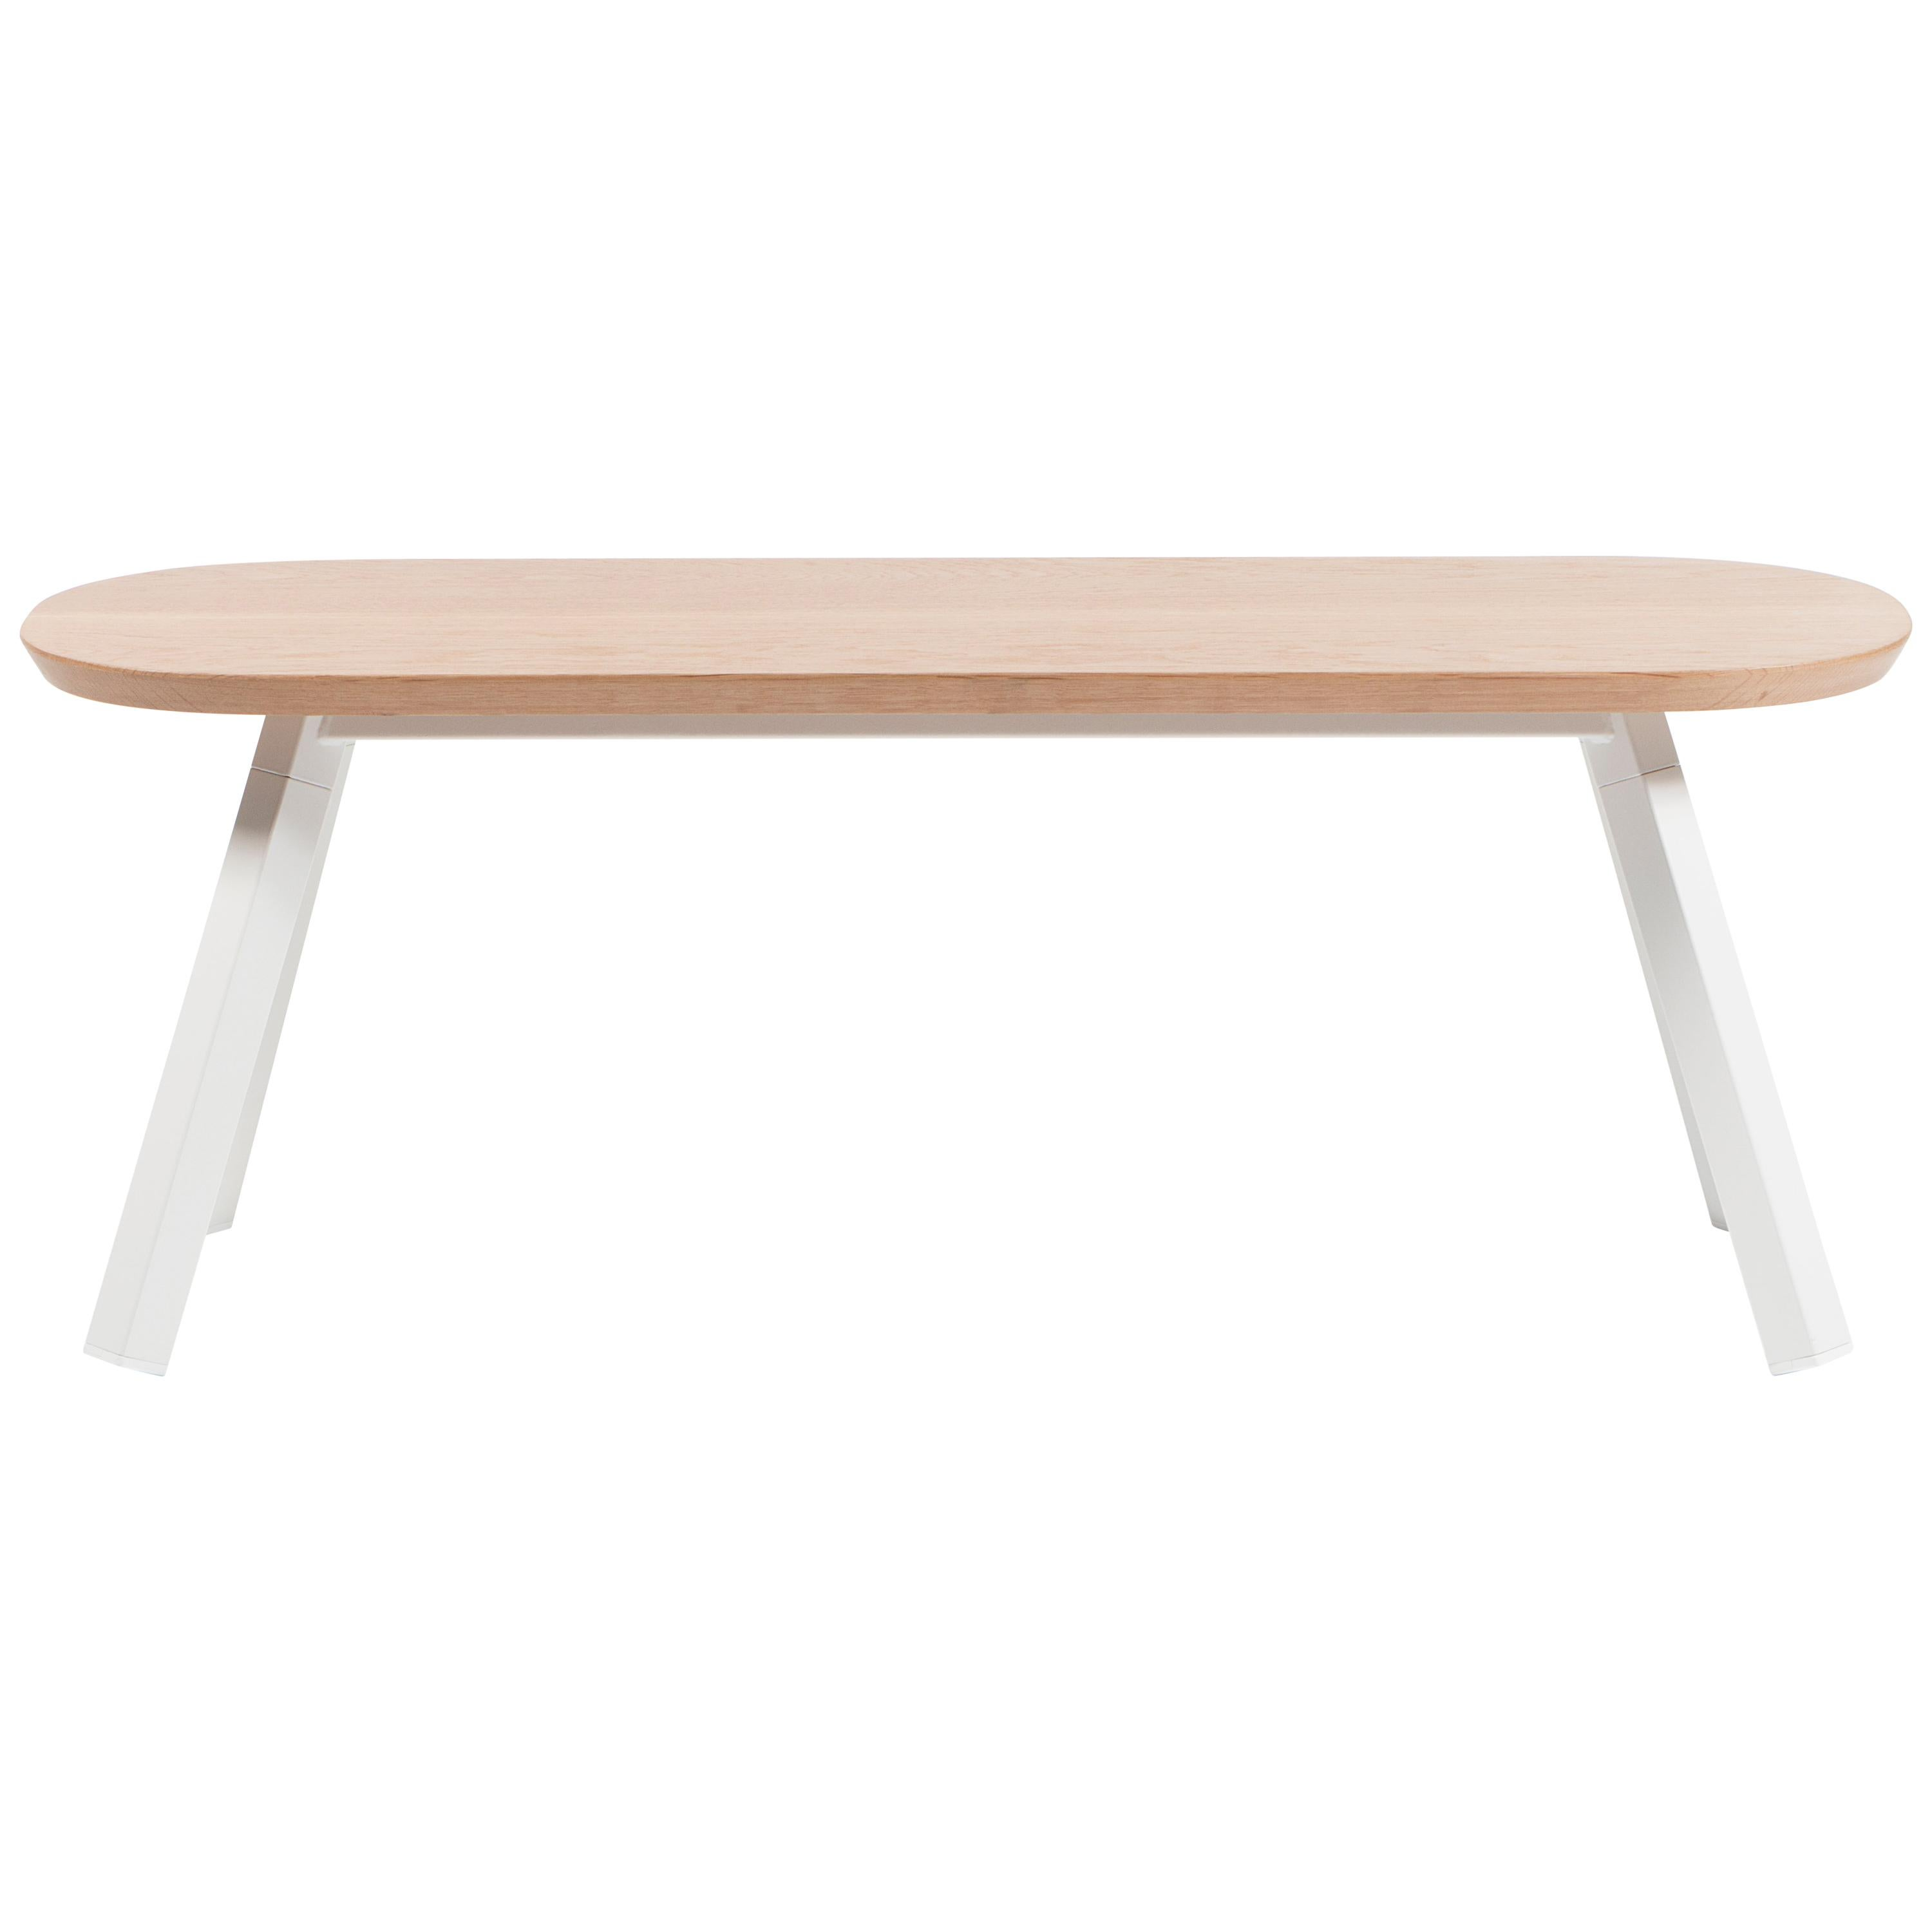 RS Barcelona You and Me 120 Bench in Oak with White Legs by A.P.O.